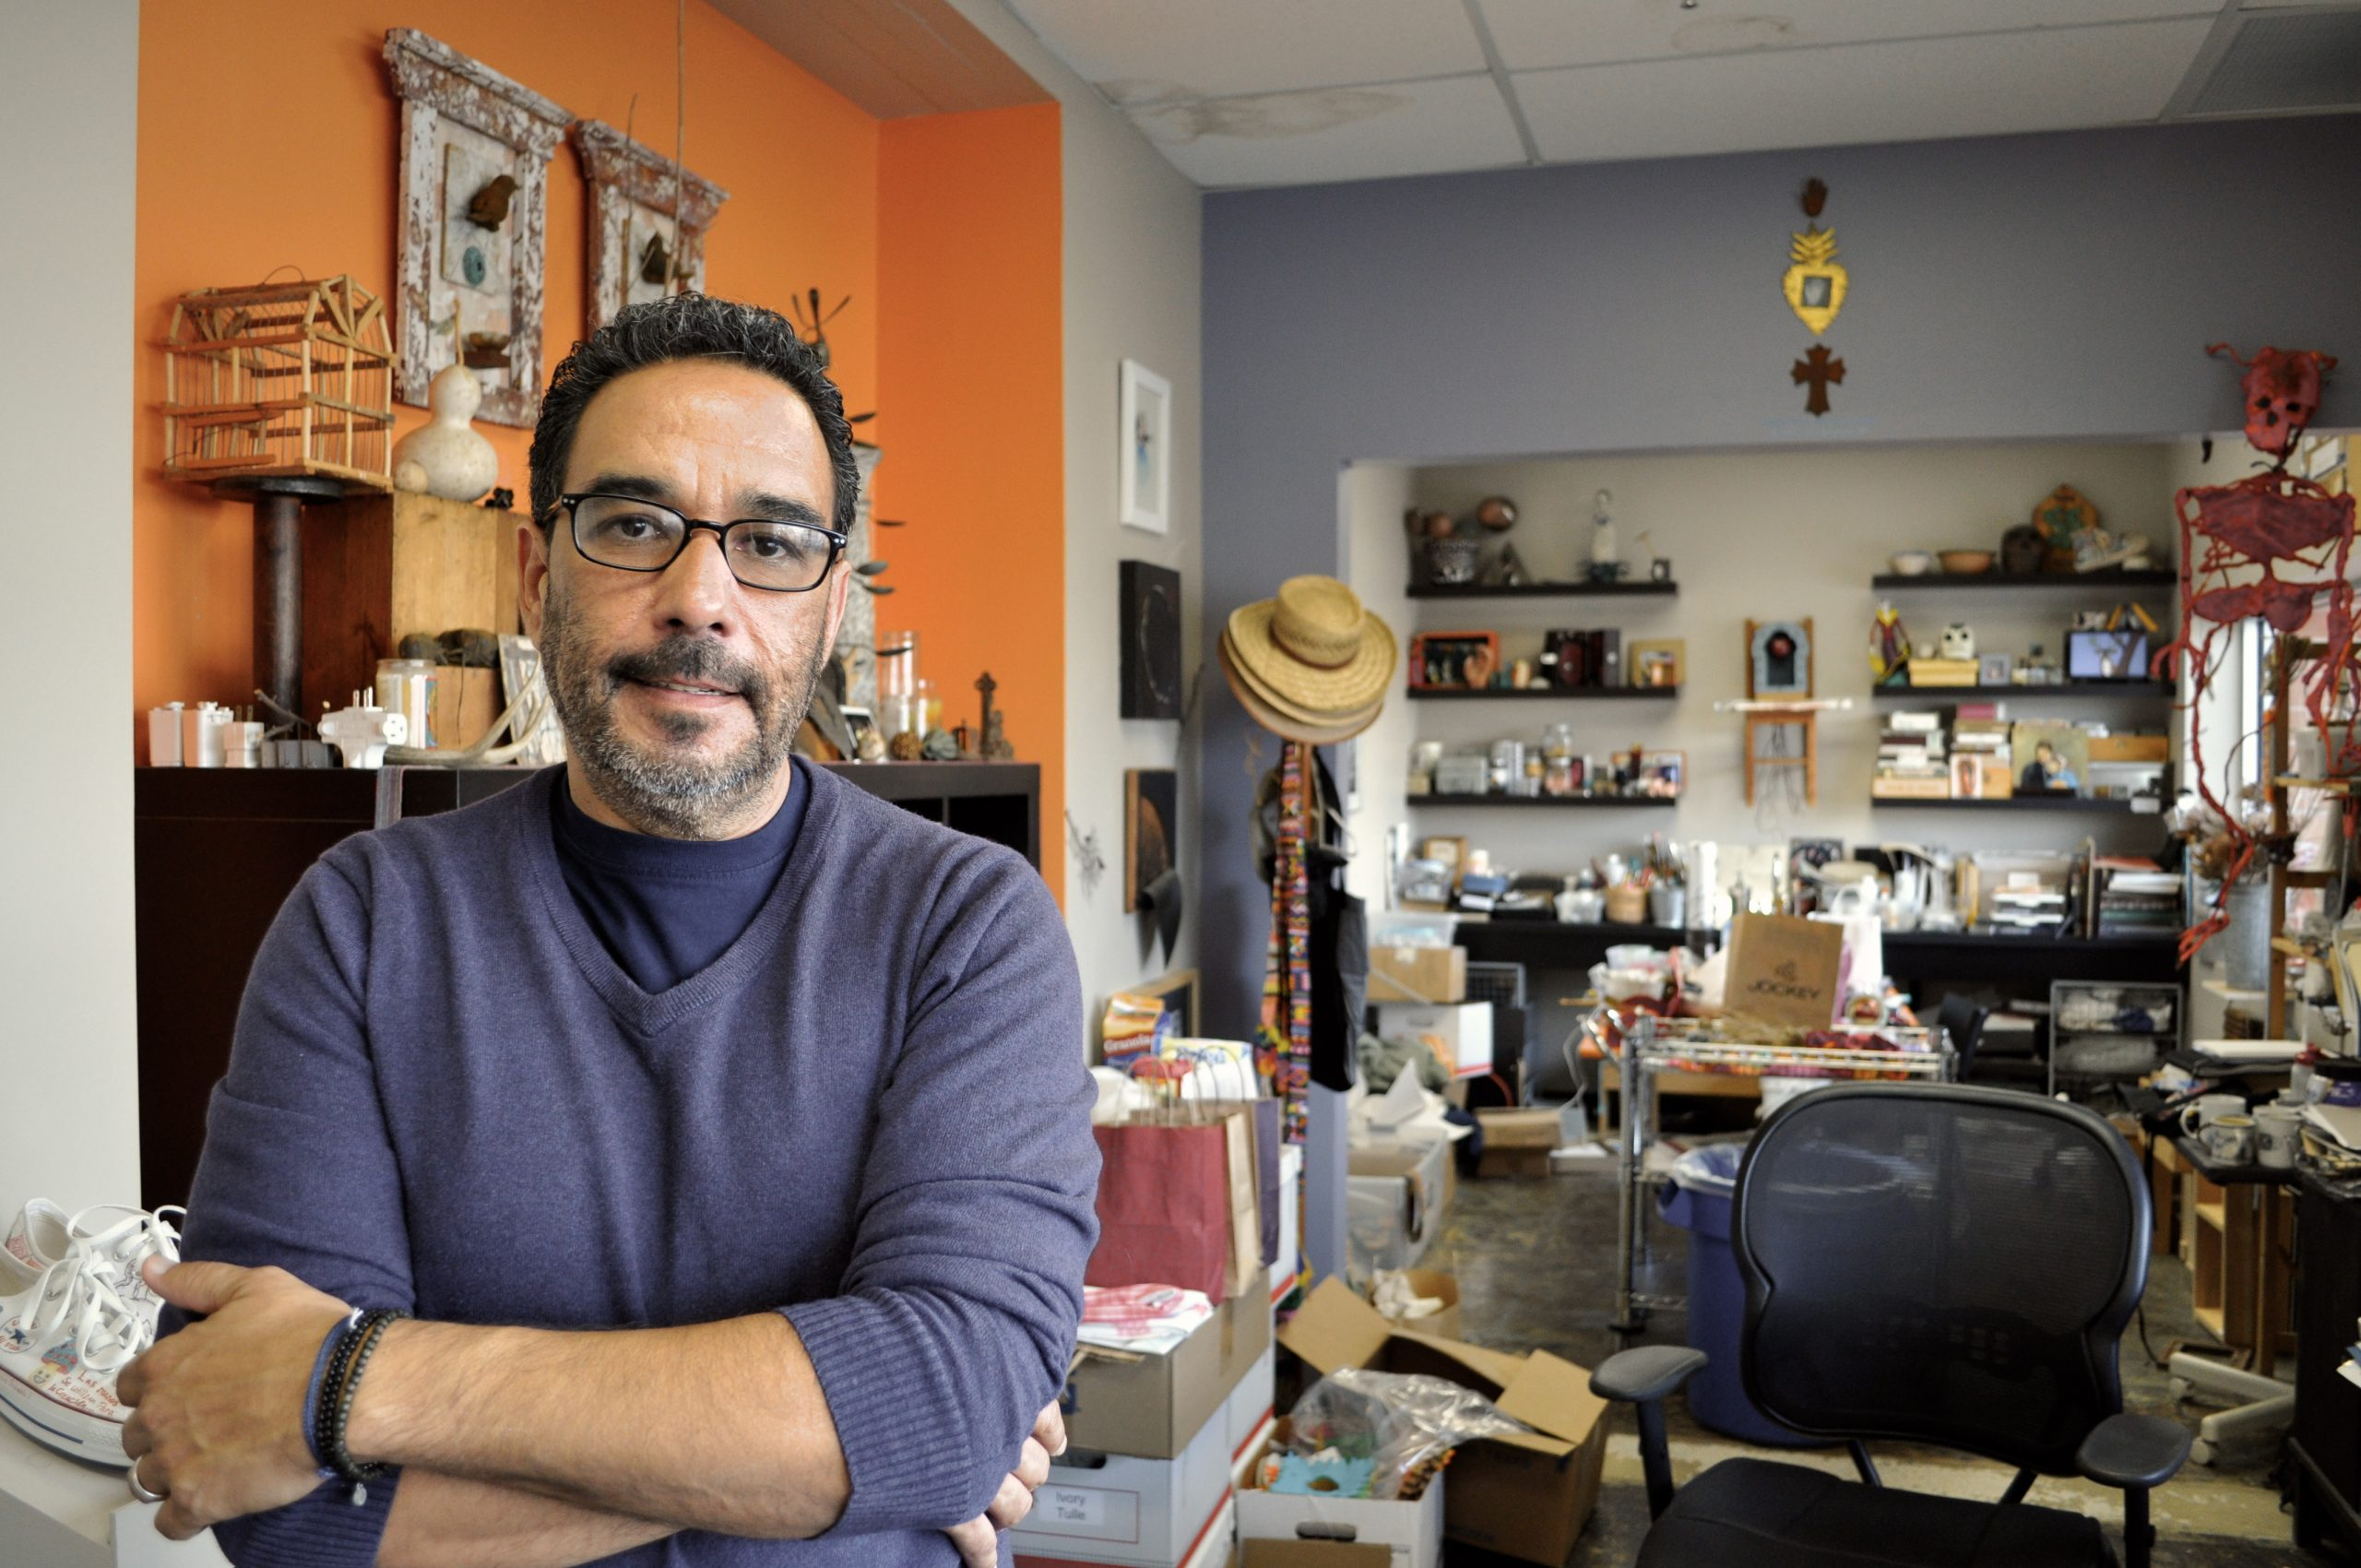 SAY Sí Executive and Artistic Director Jon Hinojosa poses for a photo in his office, which has a tendency to look more like and art studio. Photo by Iris Dimmick.